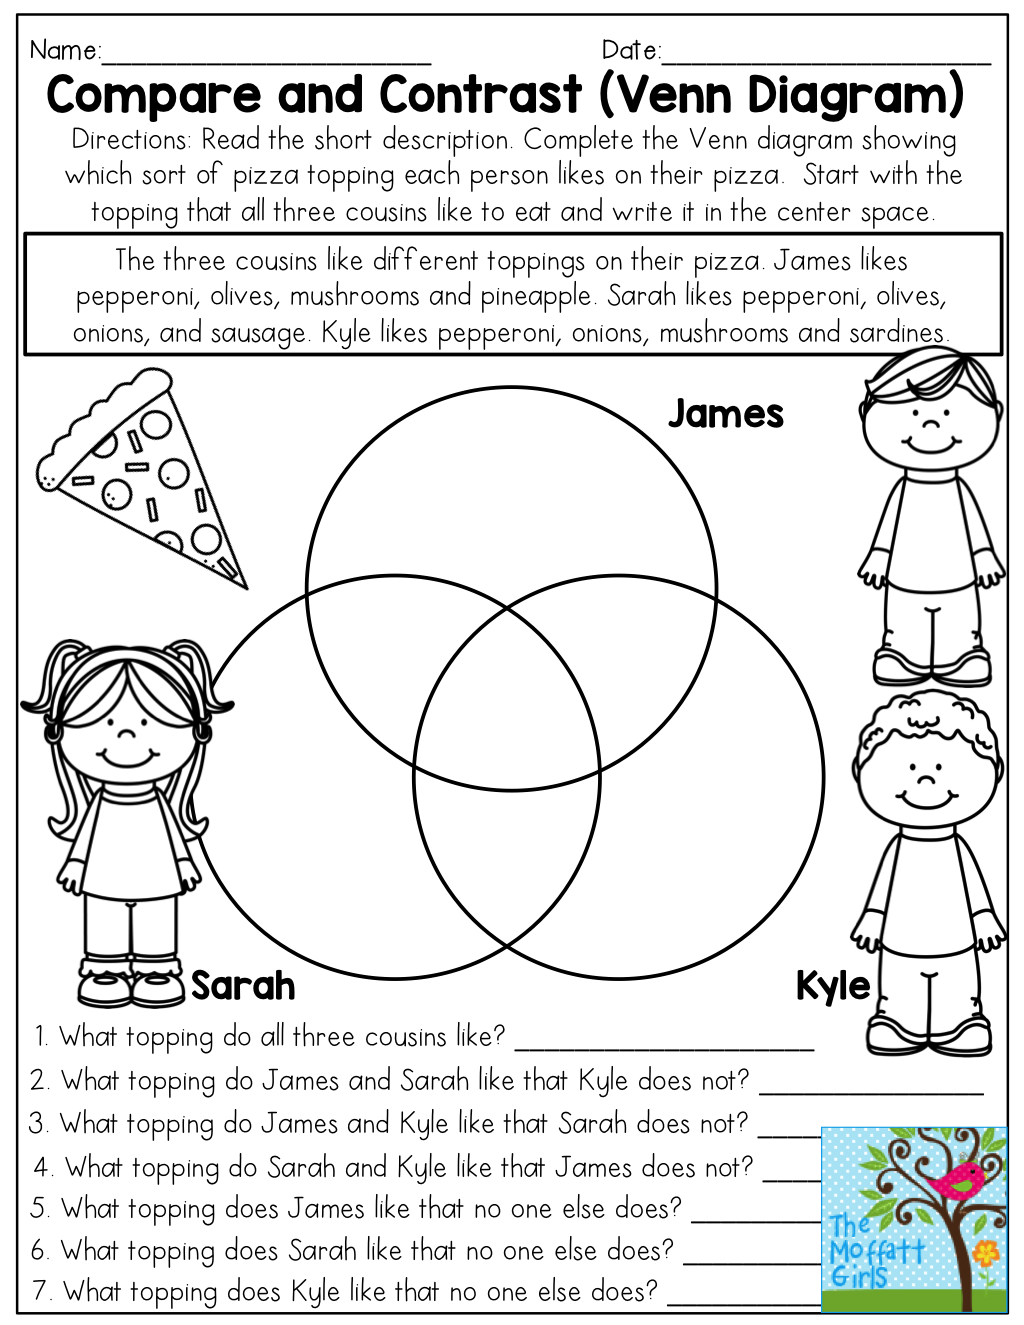 Compare And Contrast Venn Diagram 3 Things Read The Short Description Complete The Venn